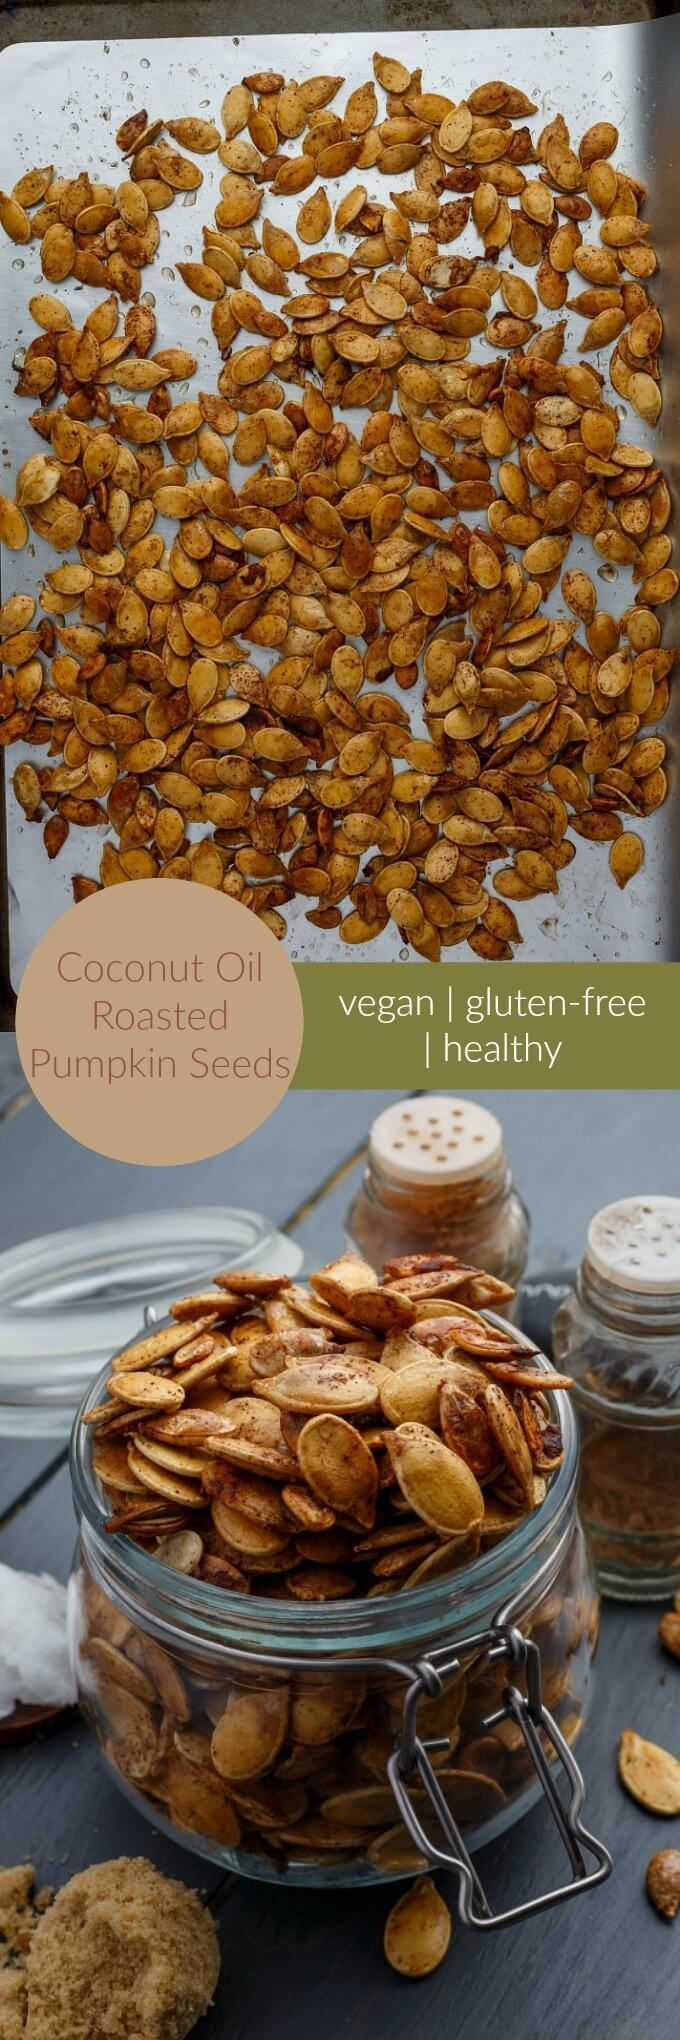 Coconut Oil Roasted Pumpkin Seeds #roastedpumpkinseedsrecipe Simple and cost effective, these pumpkin seeds will surely add crunch to your life! #roastingpumpkinseeds Coconut Oil Roasted Pumpkin Seeds #roastedpumpkinseedsrecipe Simple and cost effective, these pumpkin seeds will surely add crunch to your life! #roastedpumpkinseedsrecipe Coconut Oil Roasted Pumpkin Seeds #roastedpumpkinseedsrecipe Simple and cost effective, these pumpkin seeds will surely add crunch to your life! #roastingpumpkin #roastedpumpkinseeds